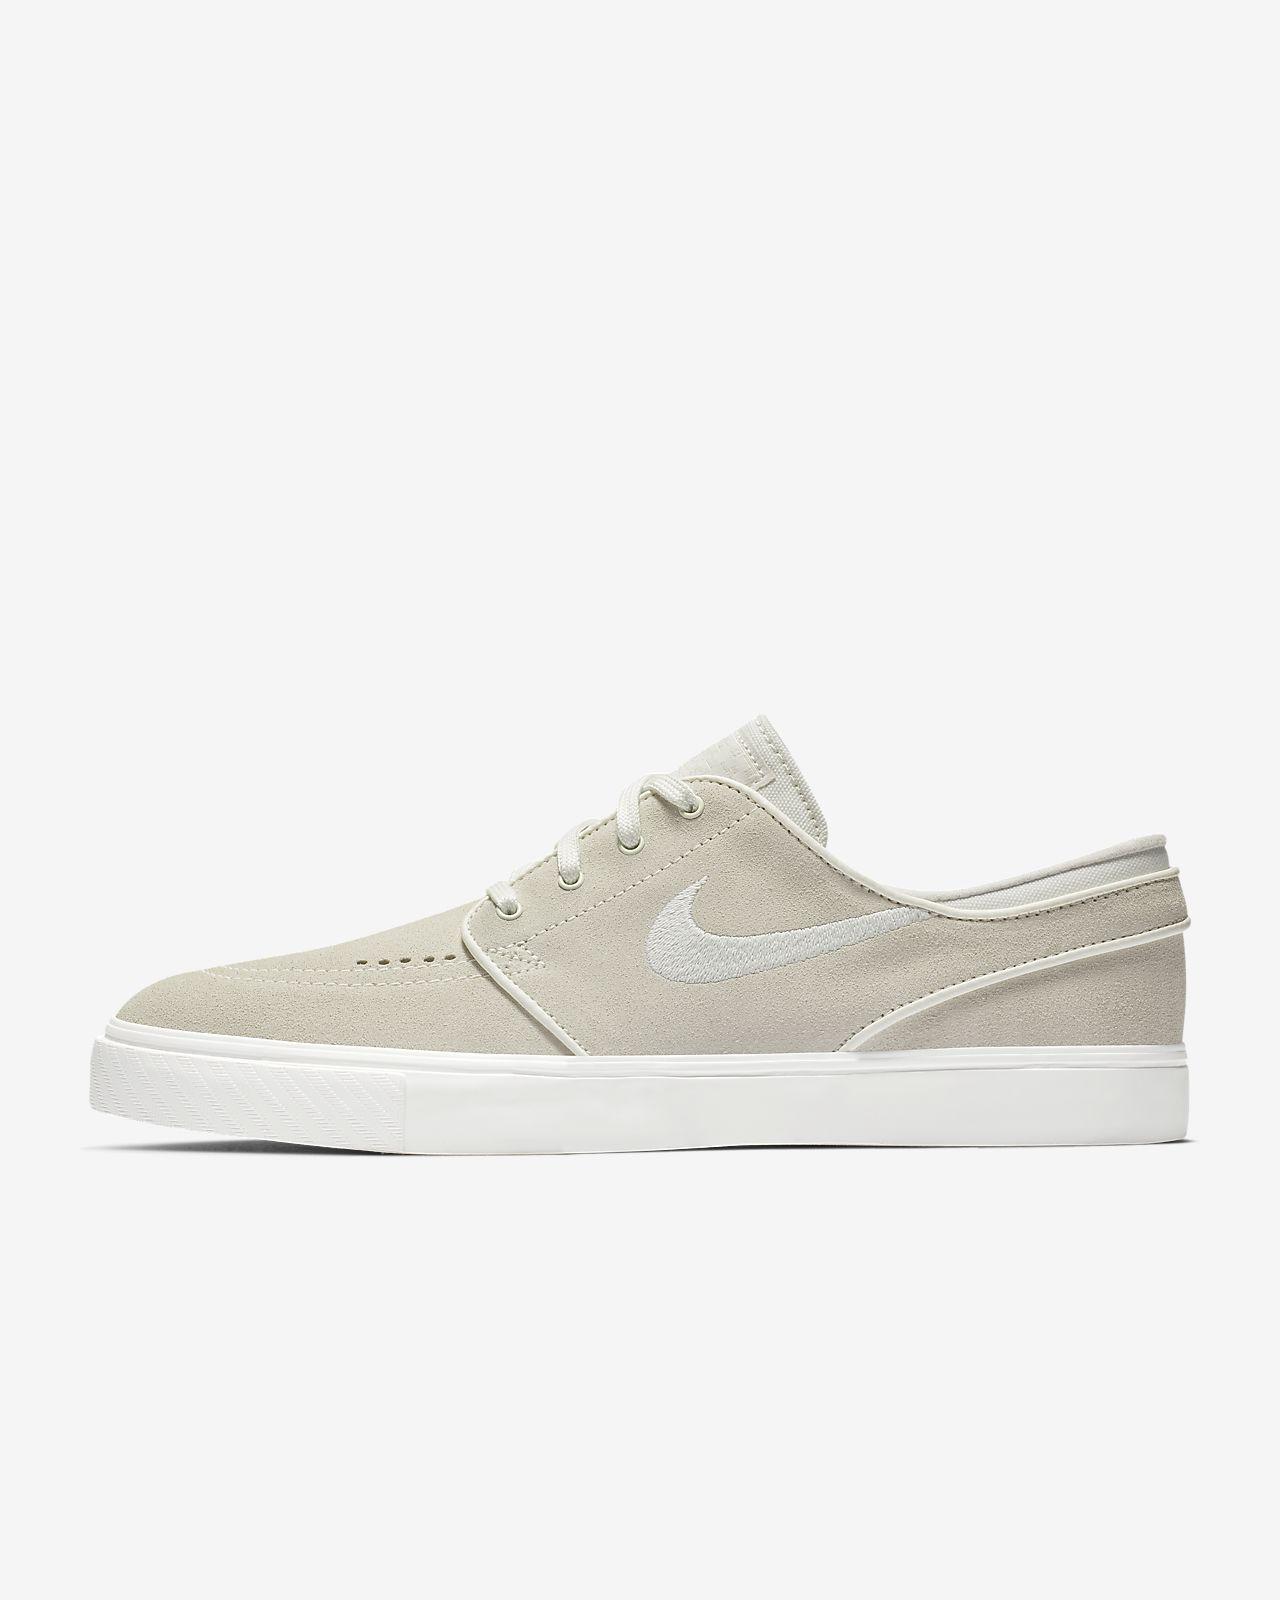 wholesale dealer 1a652 5a79a Men s Skate Shoe. Nike Zoom Stefan Janoski